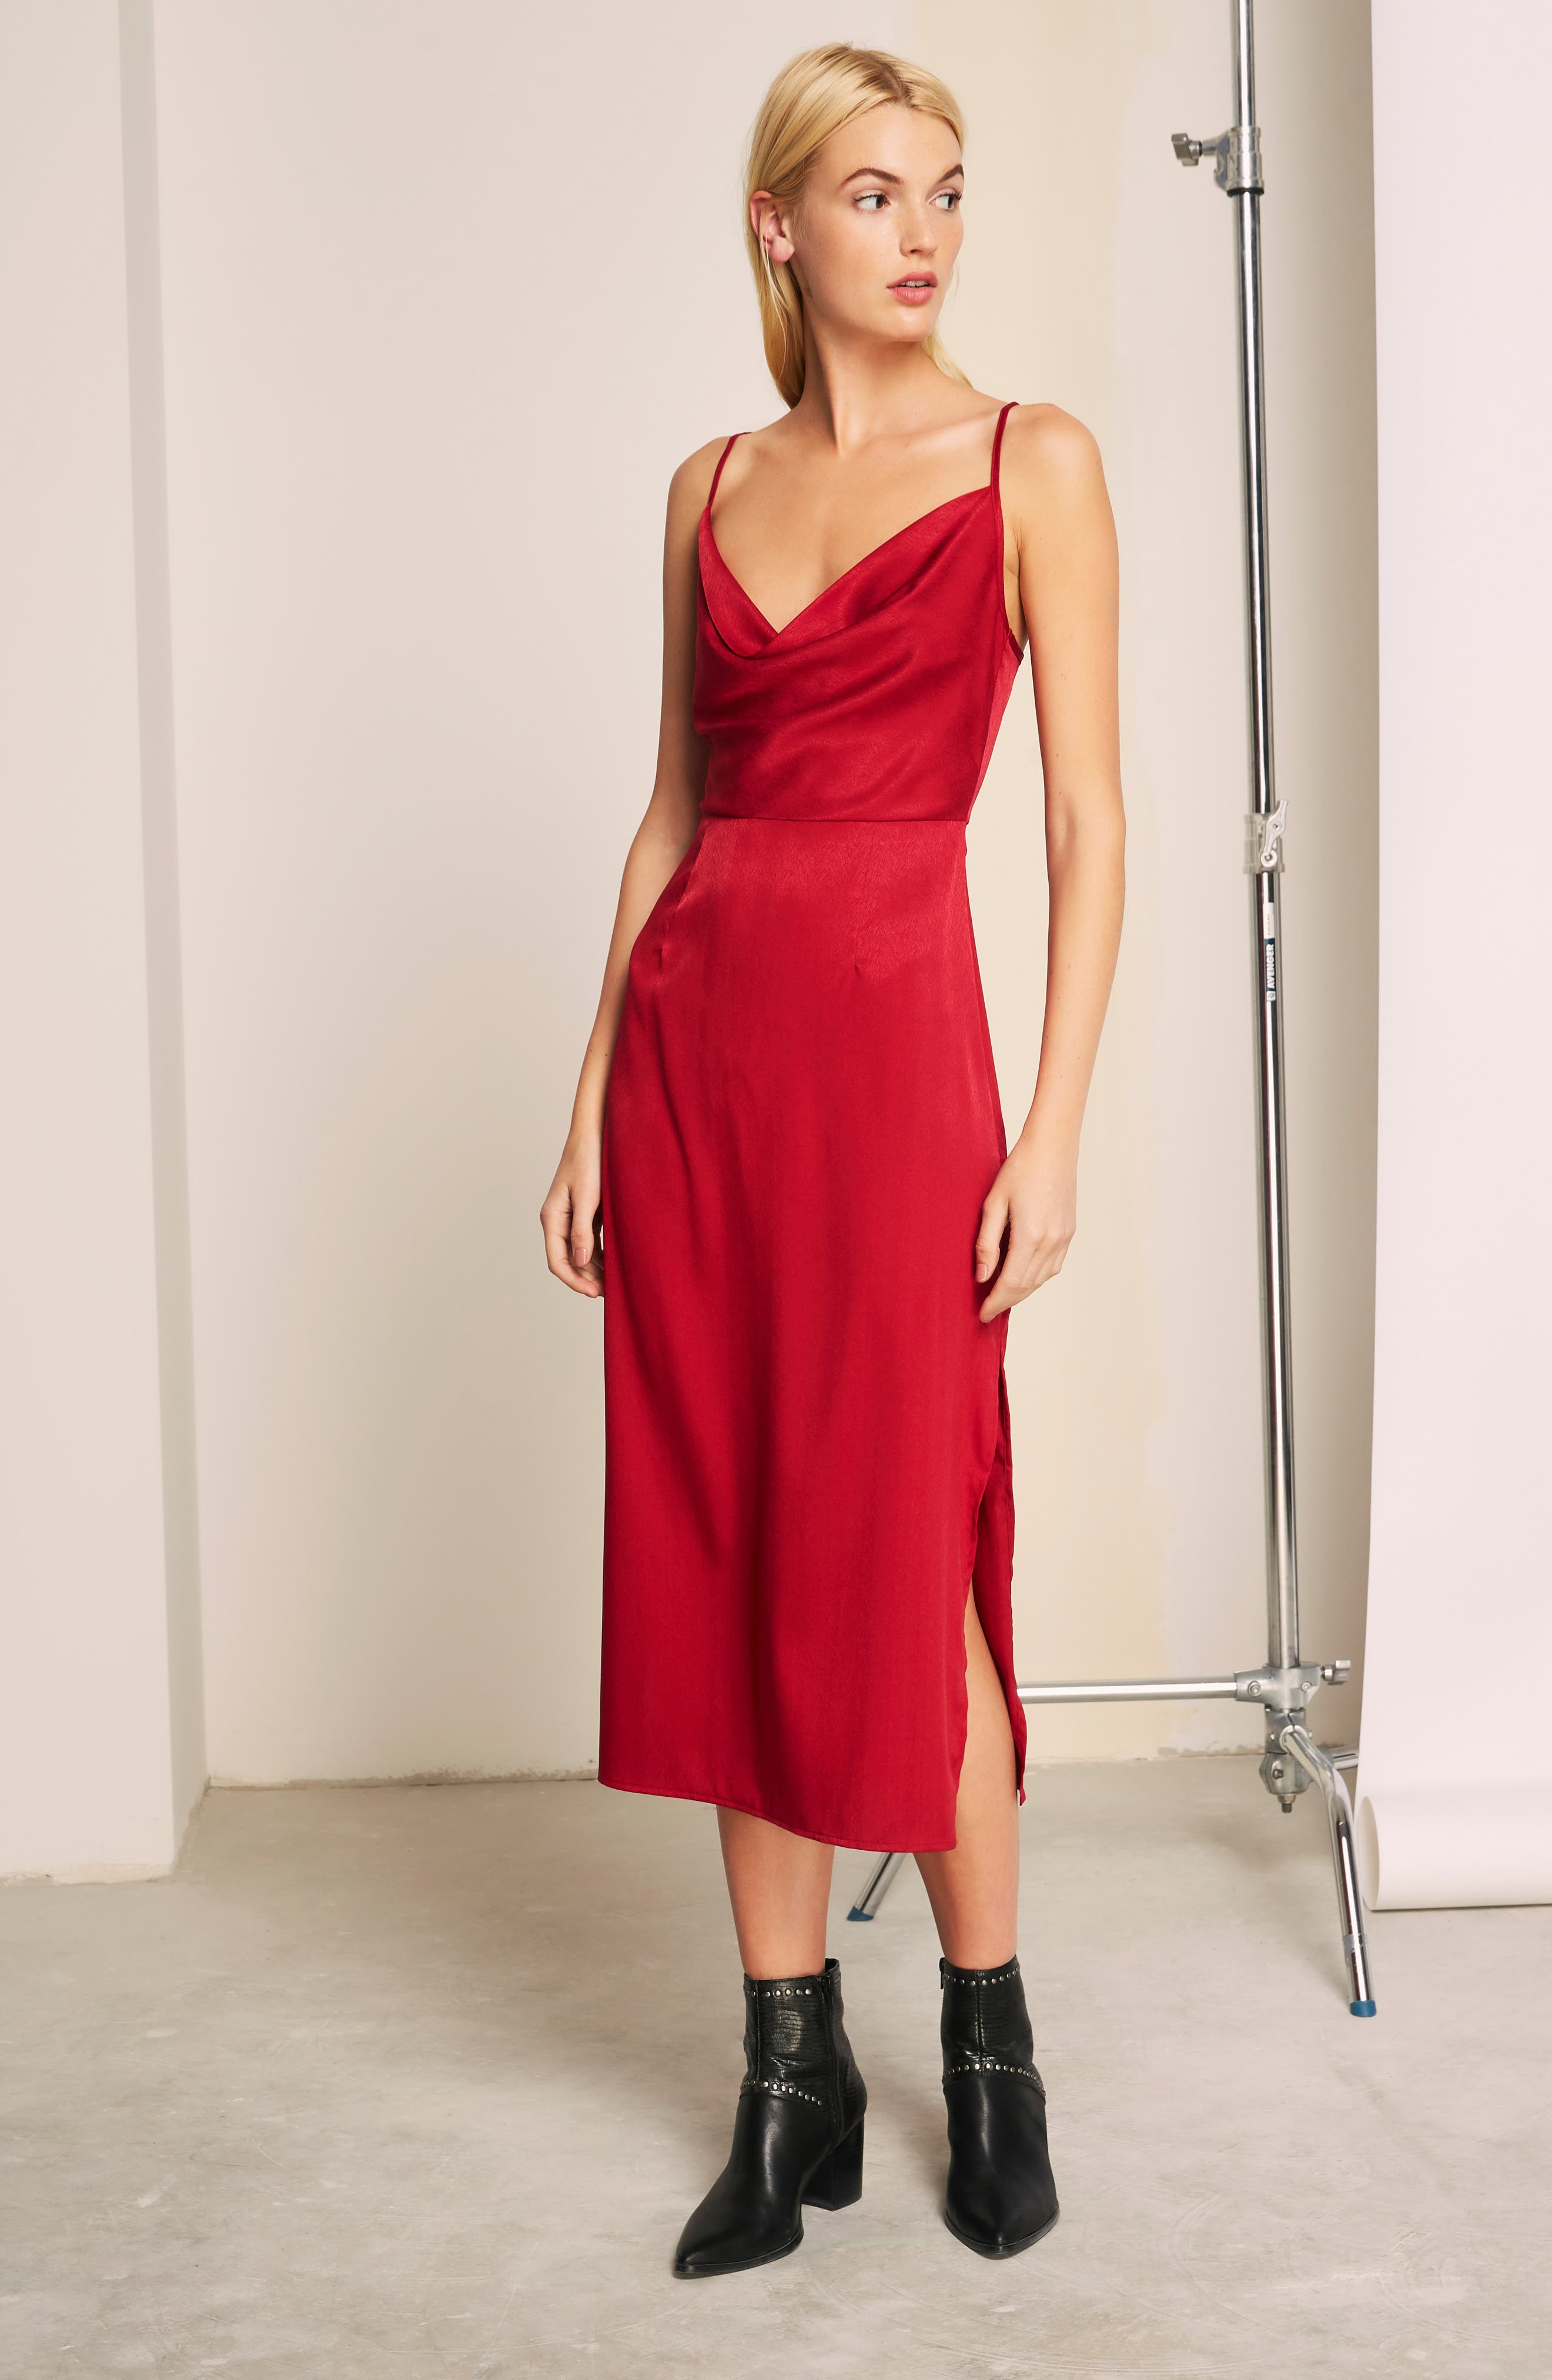 Lotti Cowl Neck Midi Dress,                             Alternate thumbnail 8, color,                             CHERRY